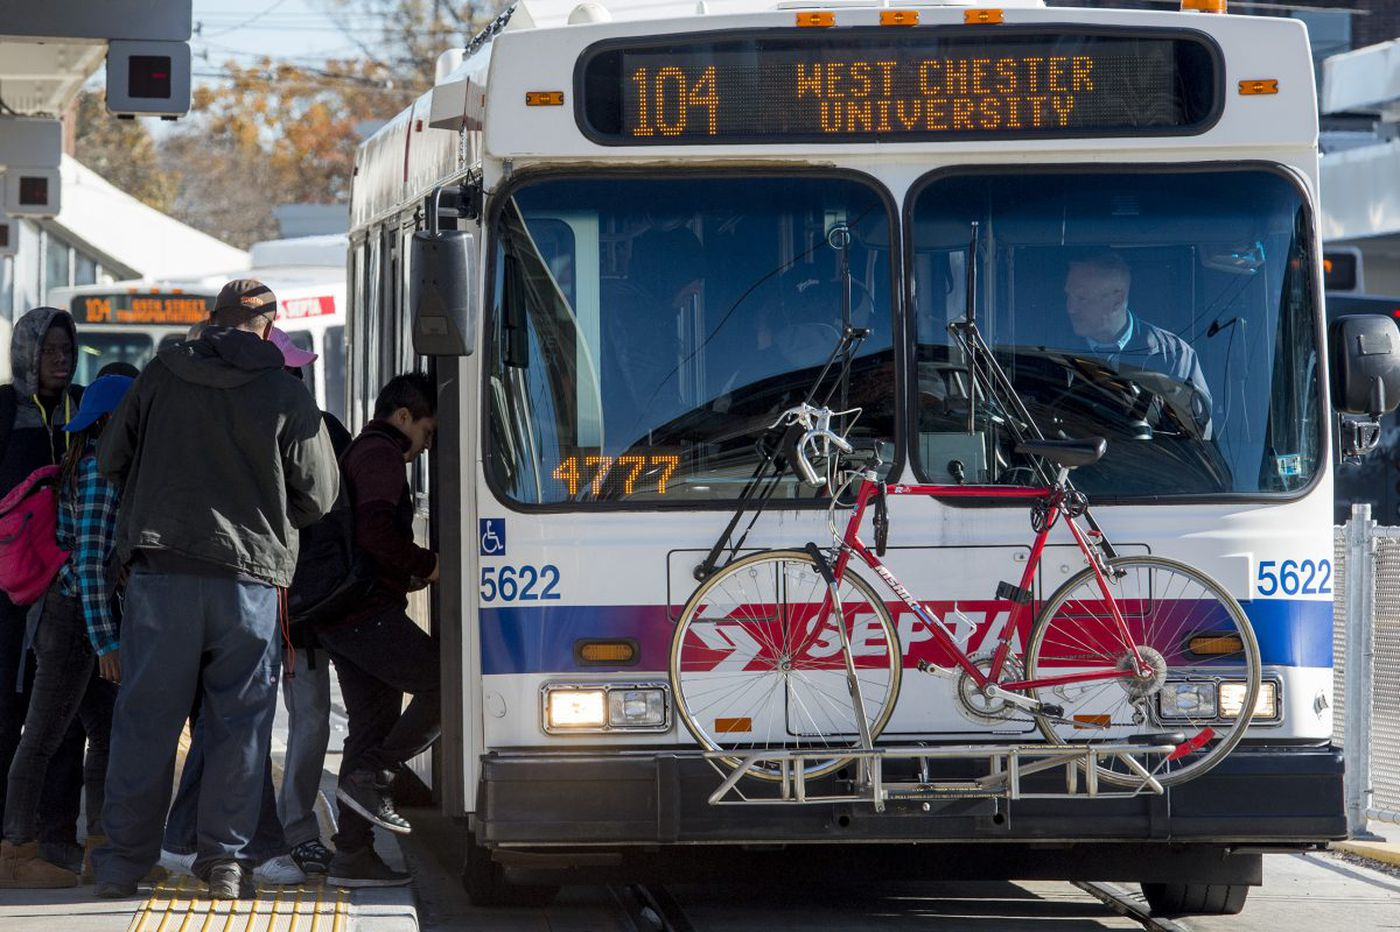 SEPTA's 2019 budget funds new buses and trains but plans for drop in ridership revenue